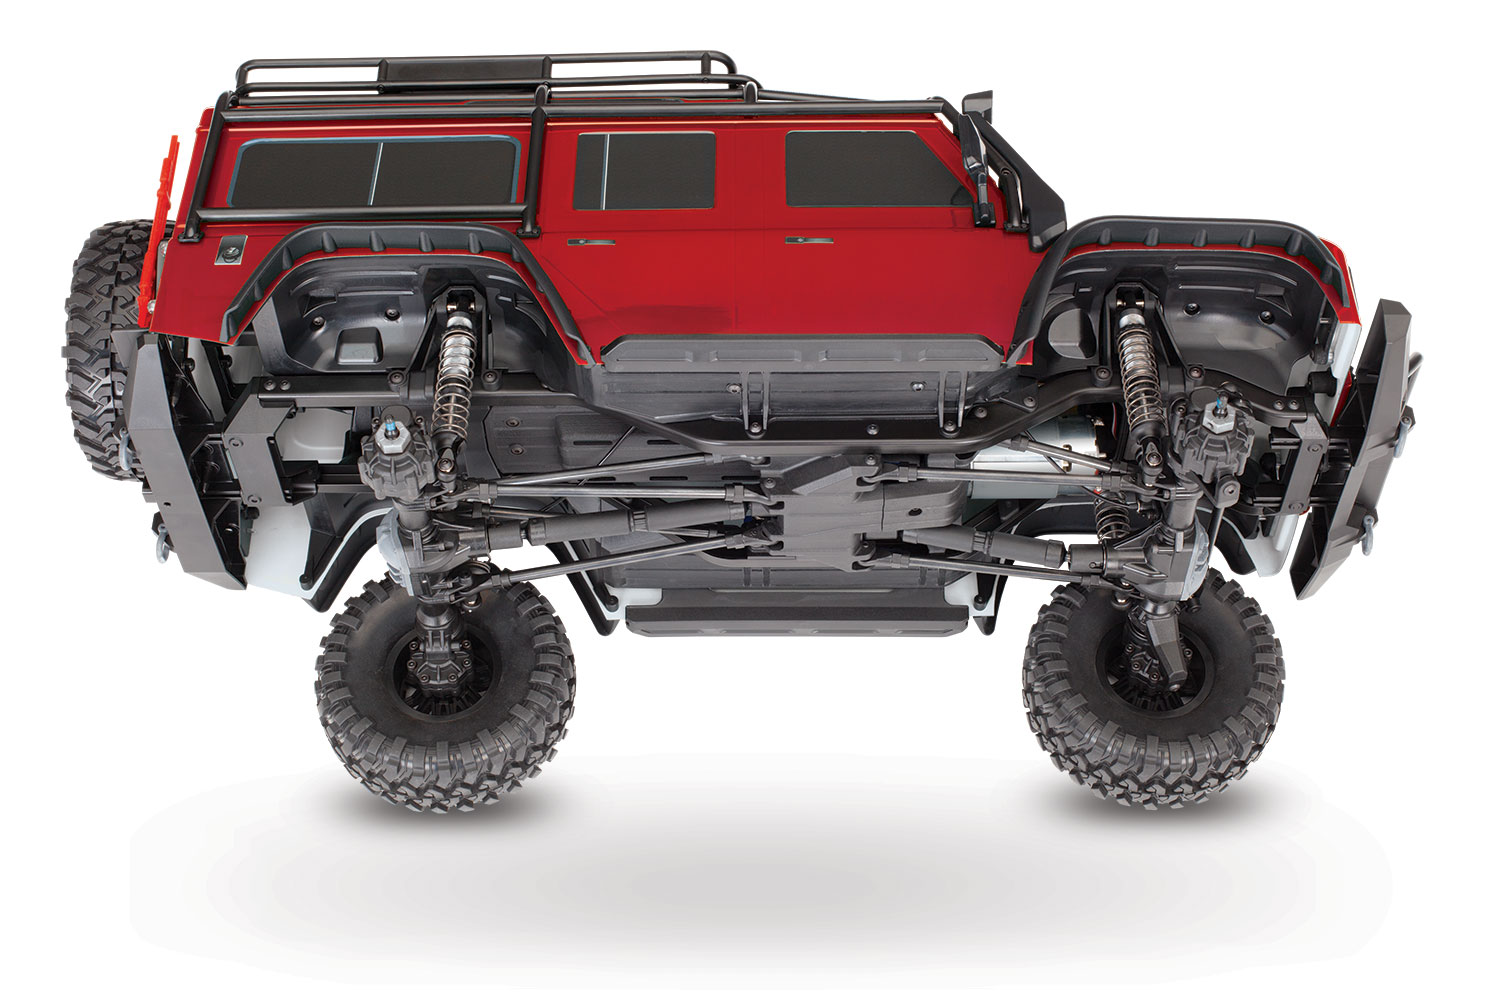 Traxxas TRX-4 1/10 Scale And Trail Crawler - Page 6 82056-4-underneath-body-on